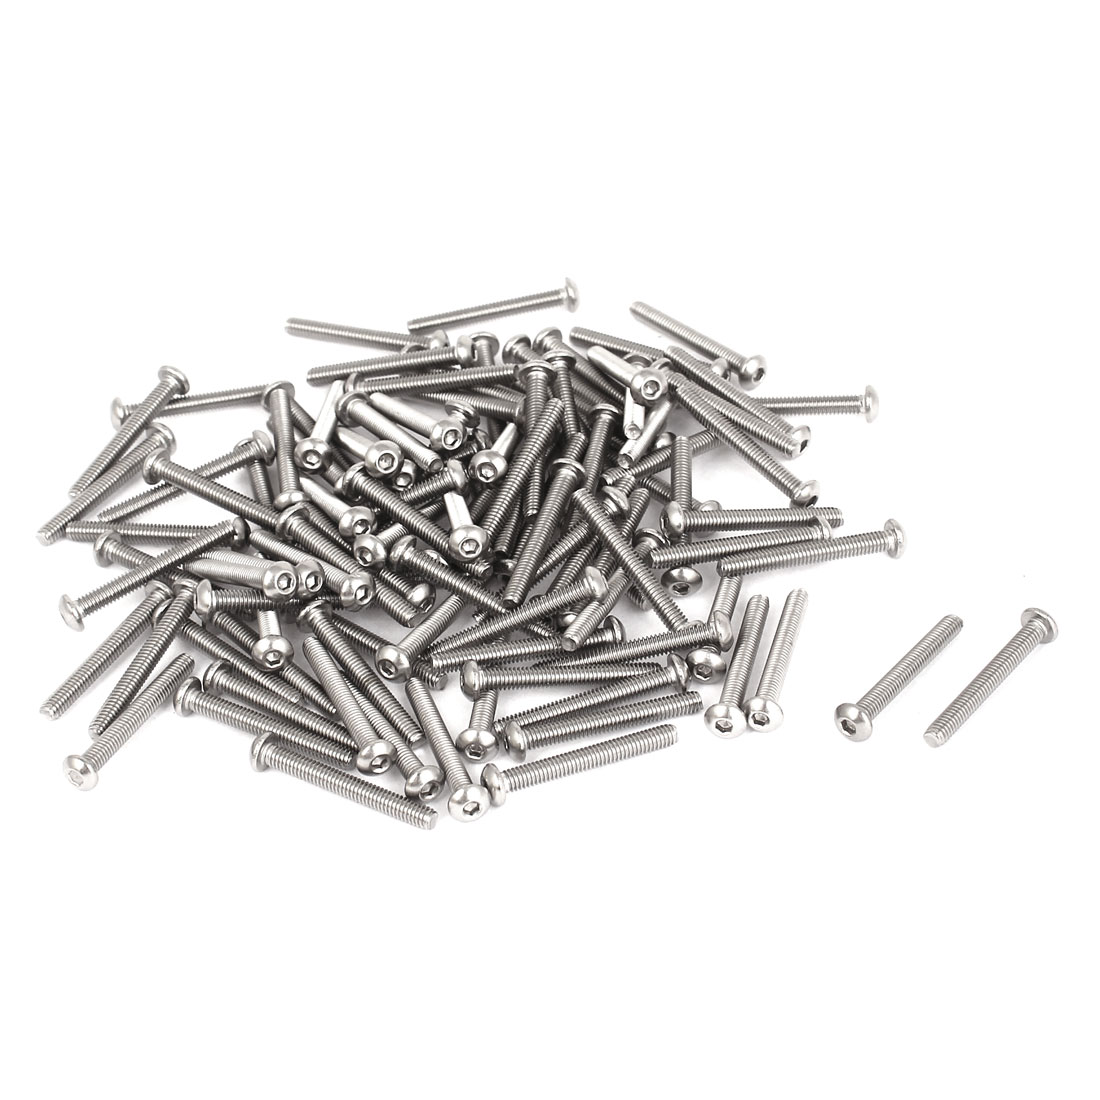 100 Pcs M2.5x20mmx0.45mm Stainless Steel Hex Socket Button Head Bolts Screws